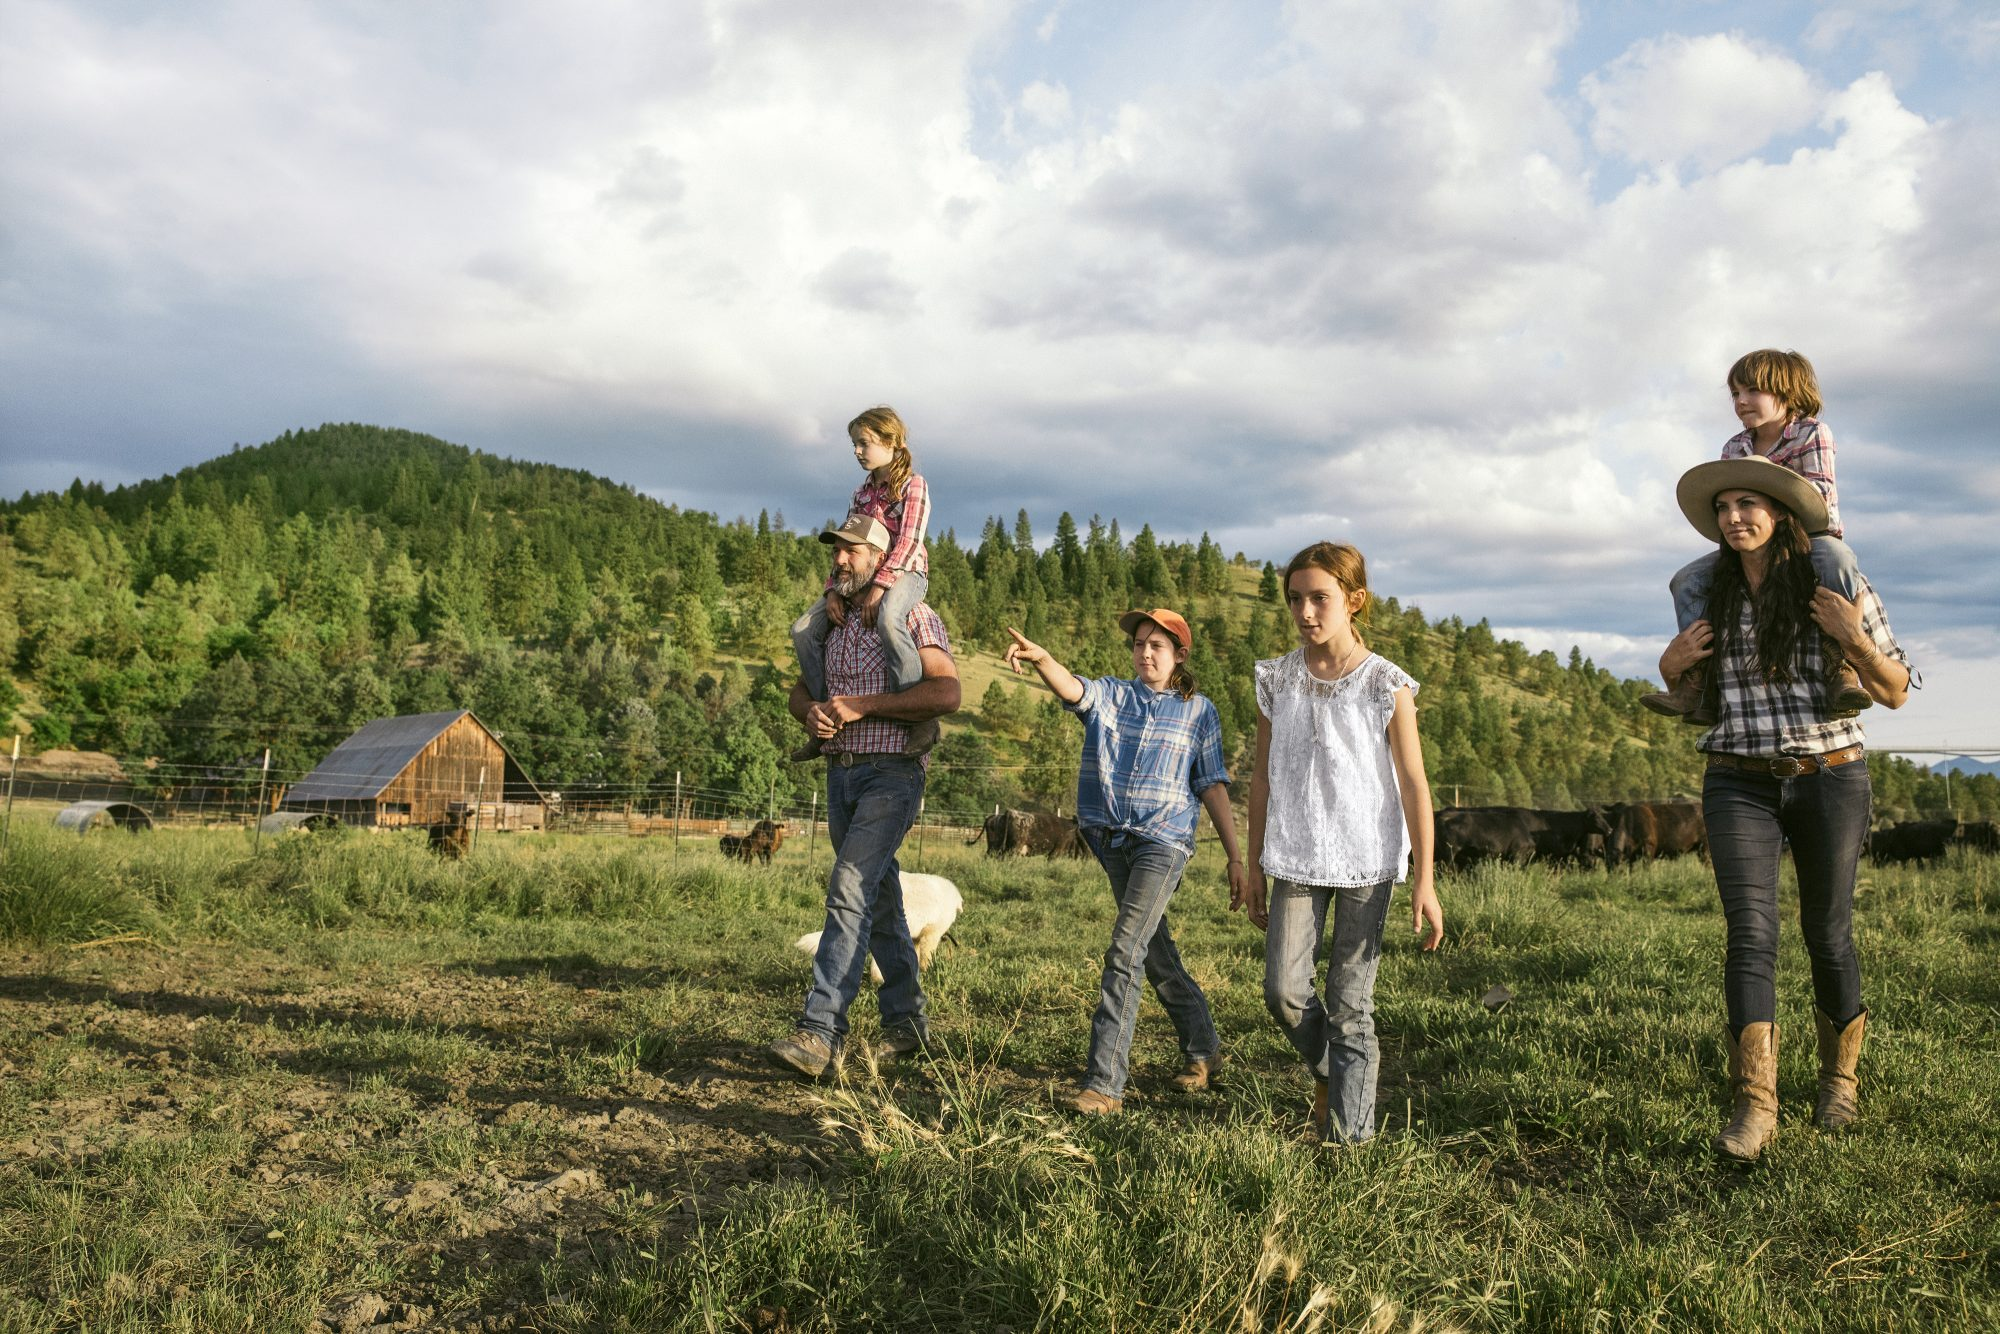 This Family of 6 Left Silicon Valley to Become Cattle Ranchers—Here's How They Made the Switch